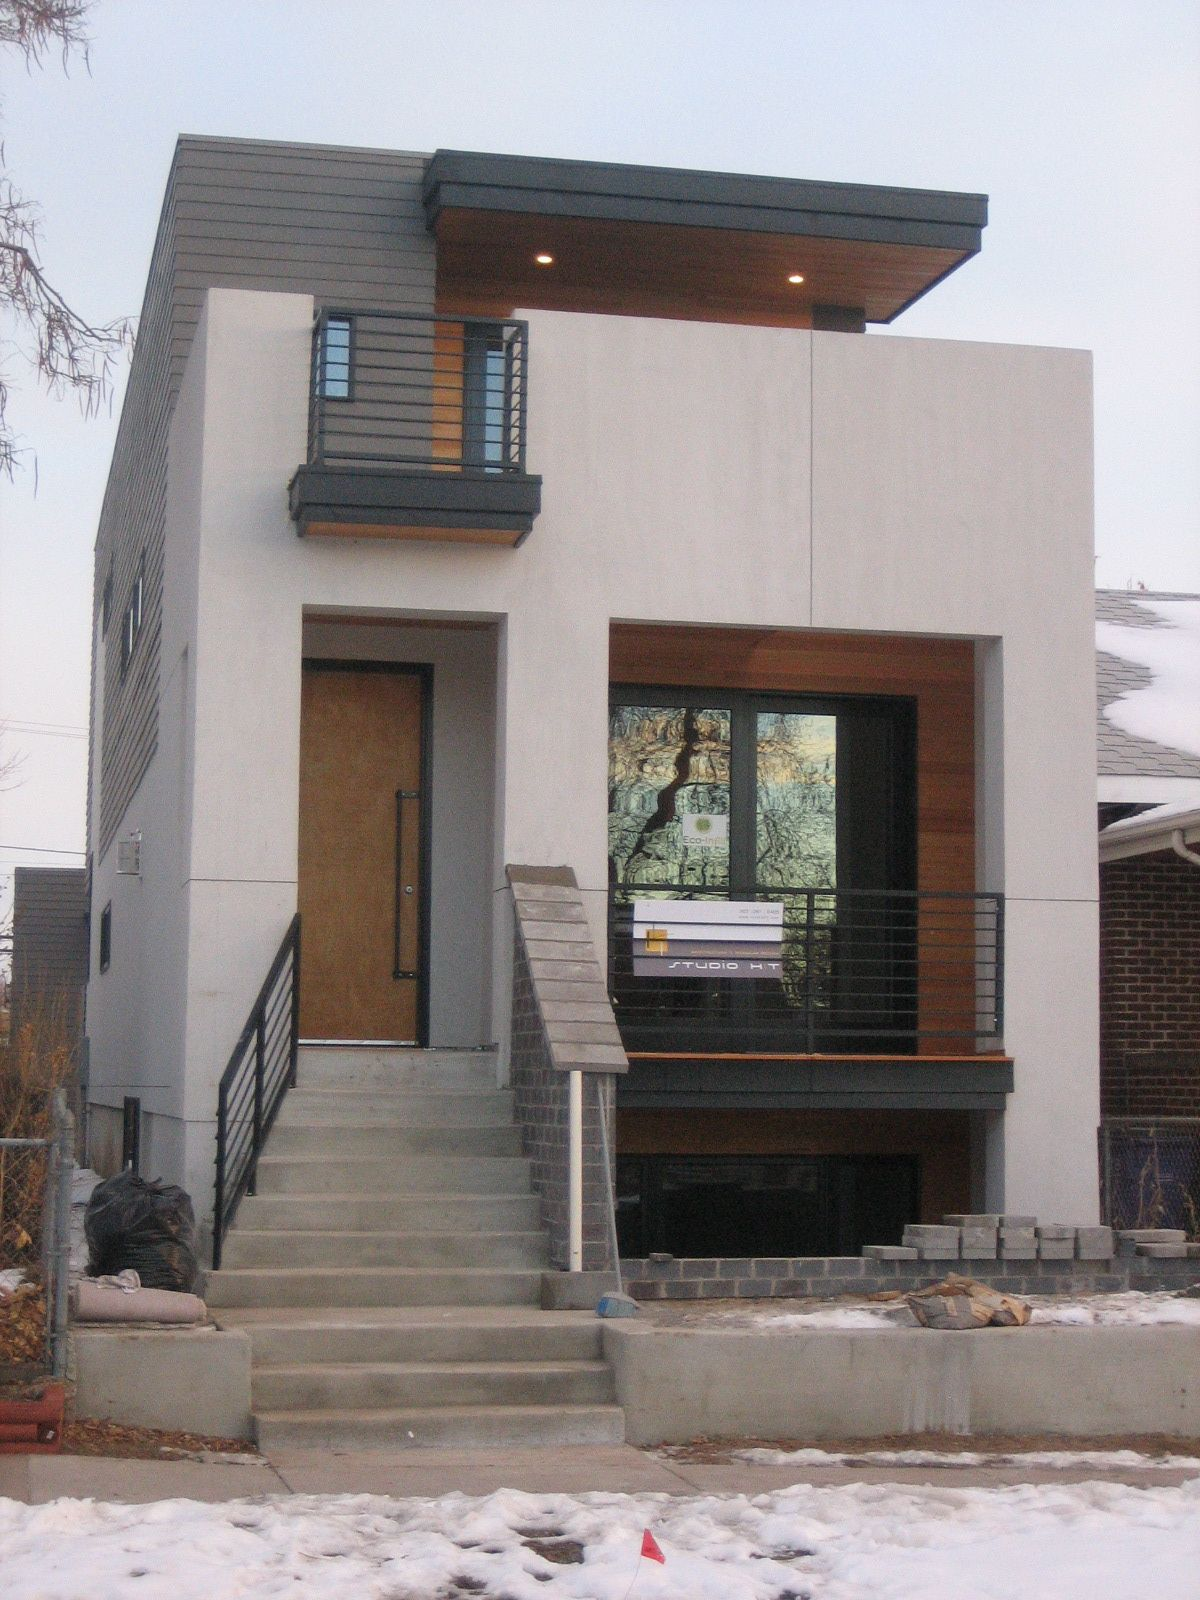 admirable small house types plans and exterior ideas awesome minimalist prefabricated small houses with stairs entry areas also small balcony decors as